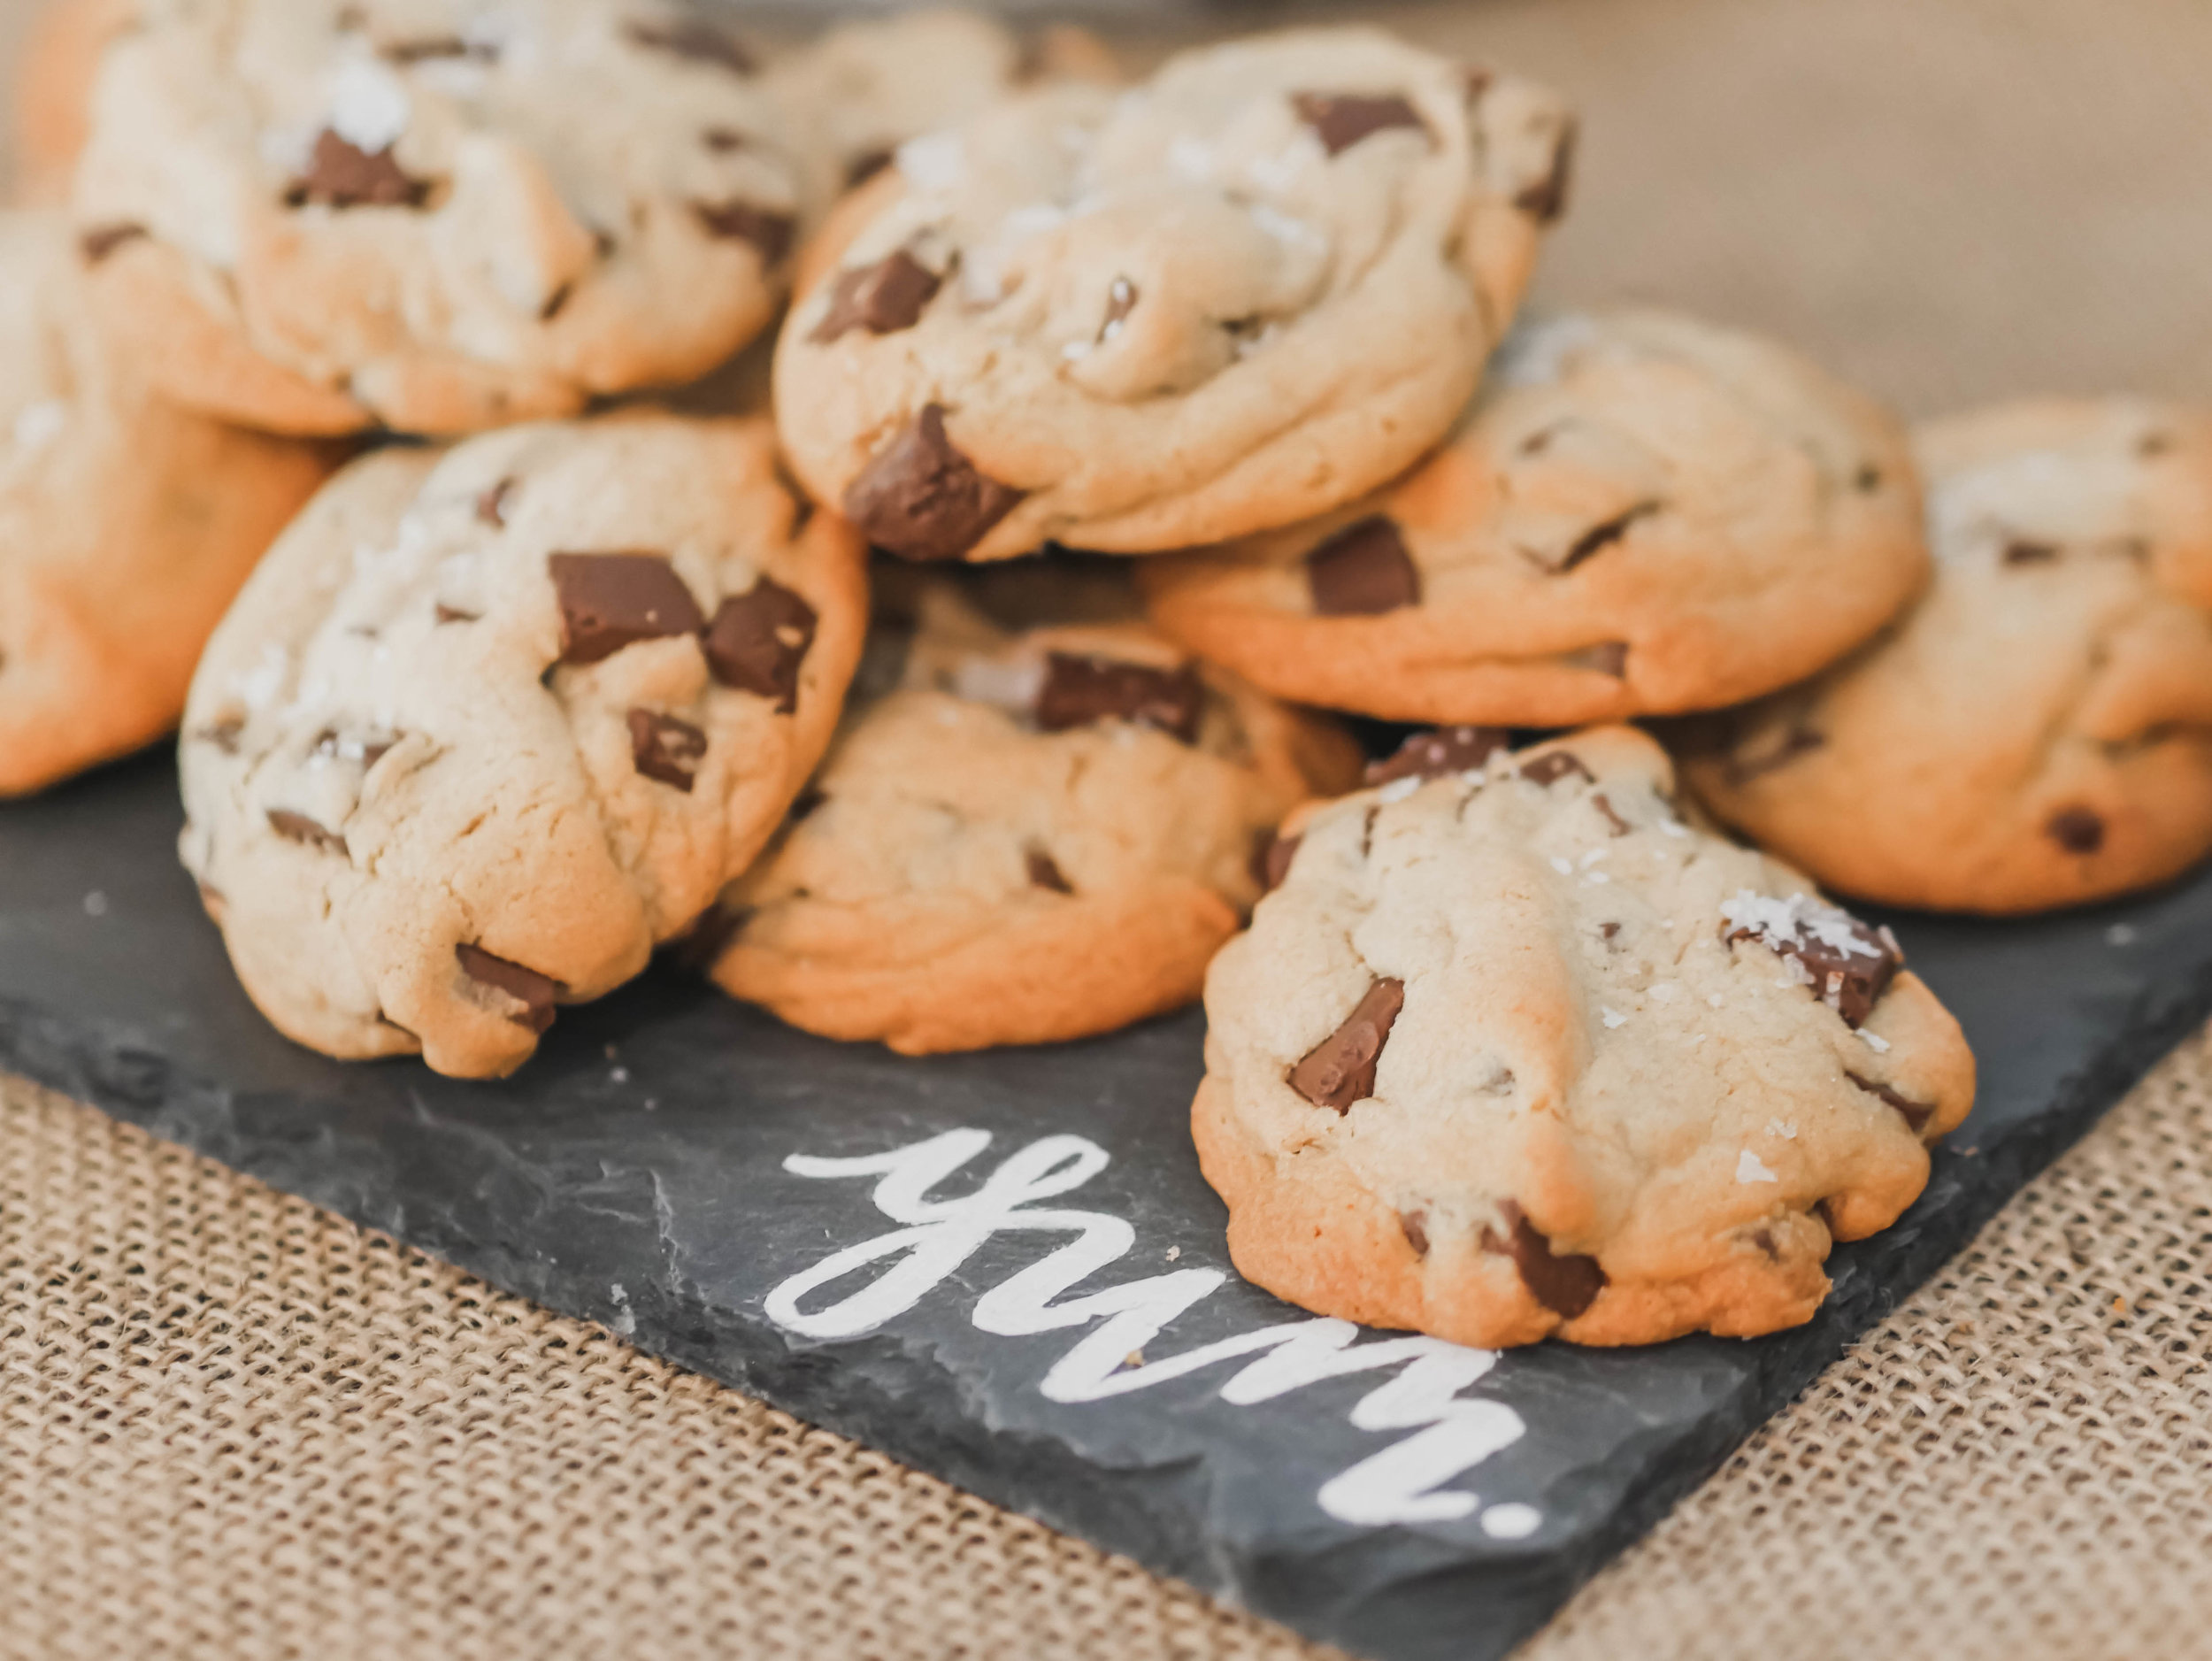 The yummiest of chocolate chip cookies for a One Smart Cookie Graduation Party - as seen on Mint Event Design www.minteventdesign.com #graduationparty #graduationpartyideas #partyideas #rusticpartyideas #partyinspiration #dessertbar #desserttable #cookies #chocolatechipcookies